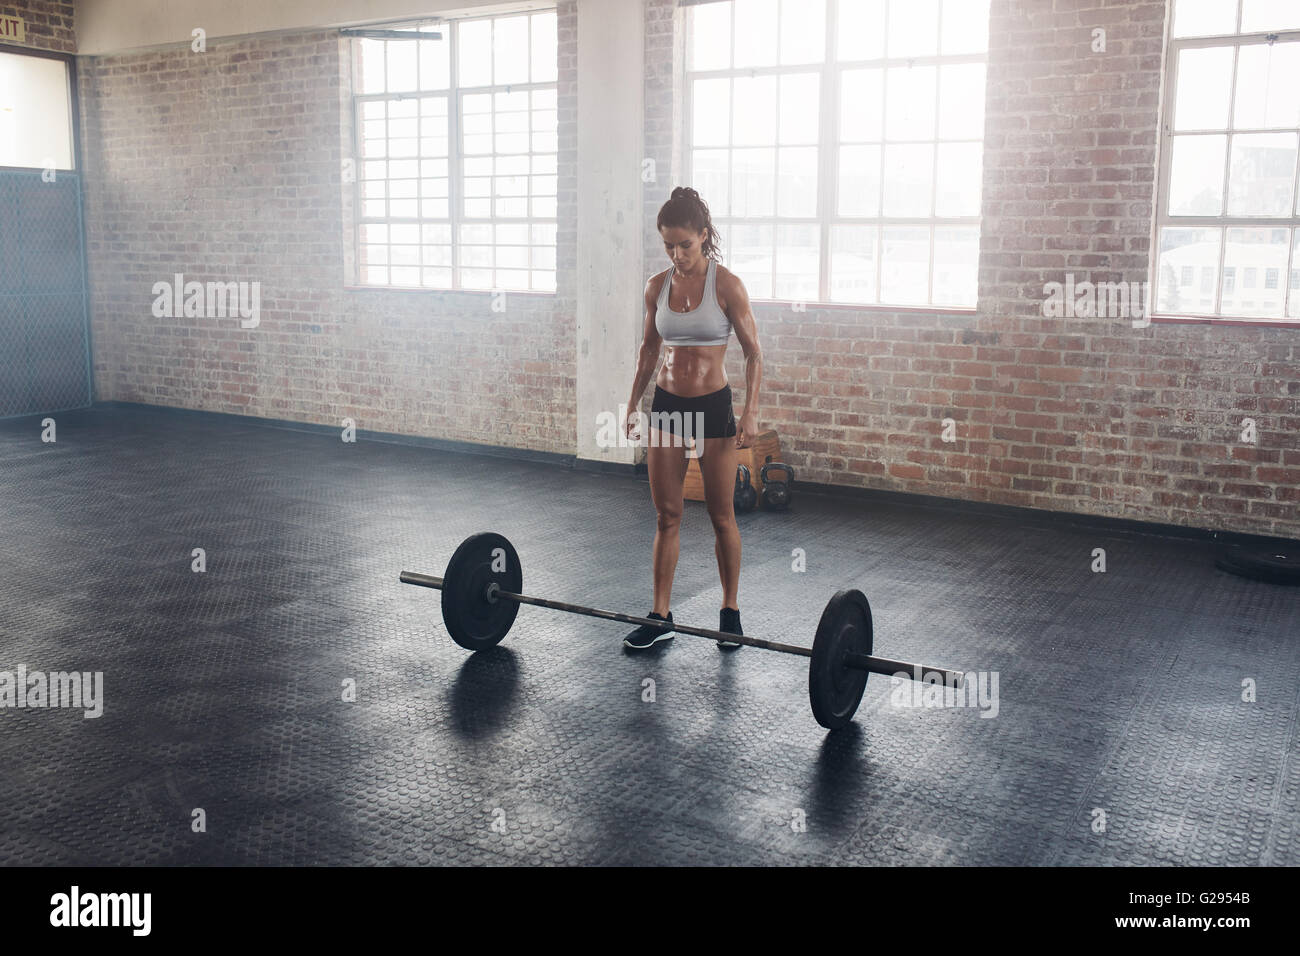 Full length portrait of muscular young woman standing at gym with barbells on floor. Strong crossfit female at gym. - Stock Image